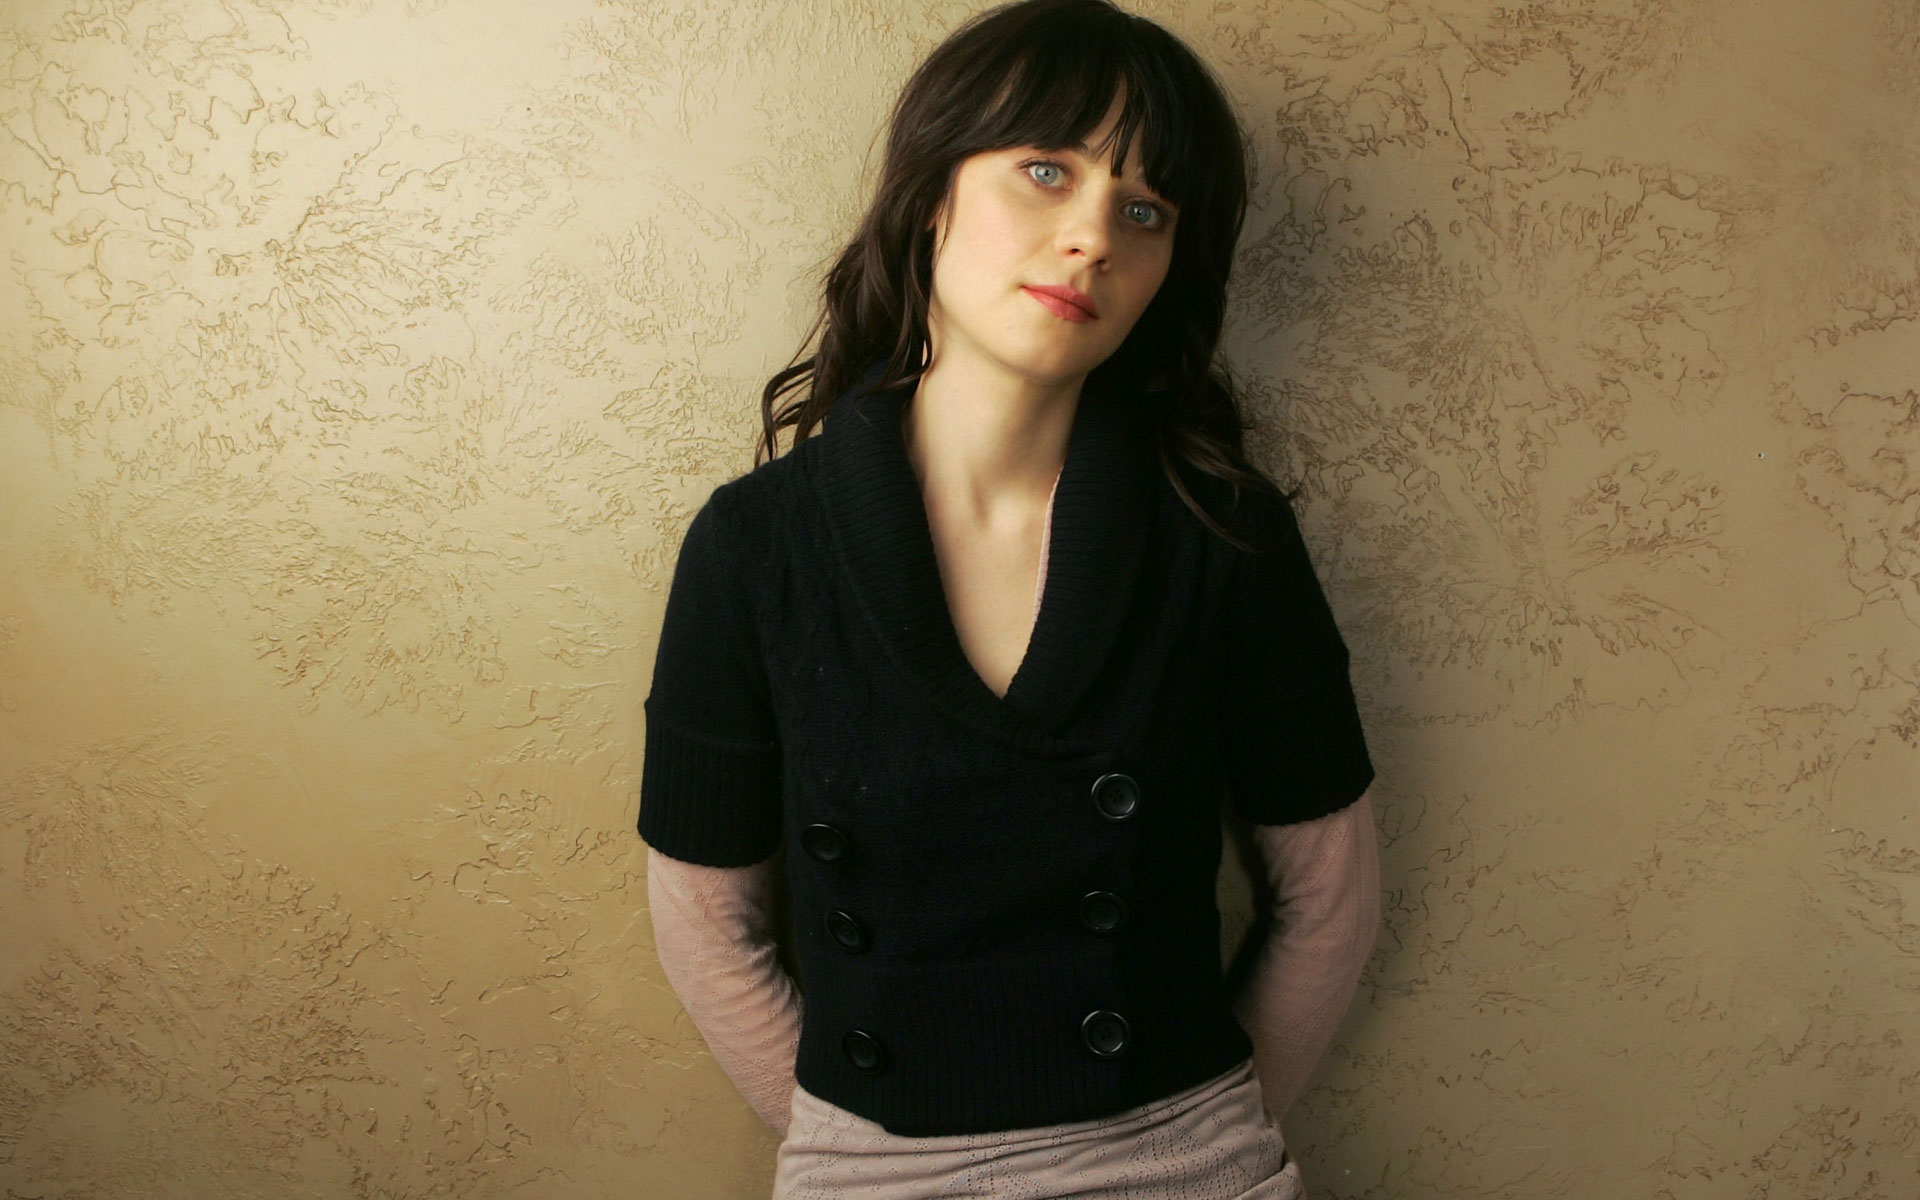 zooey deschanel widescreen computer background 953